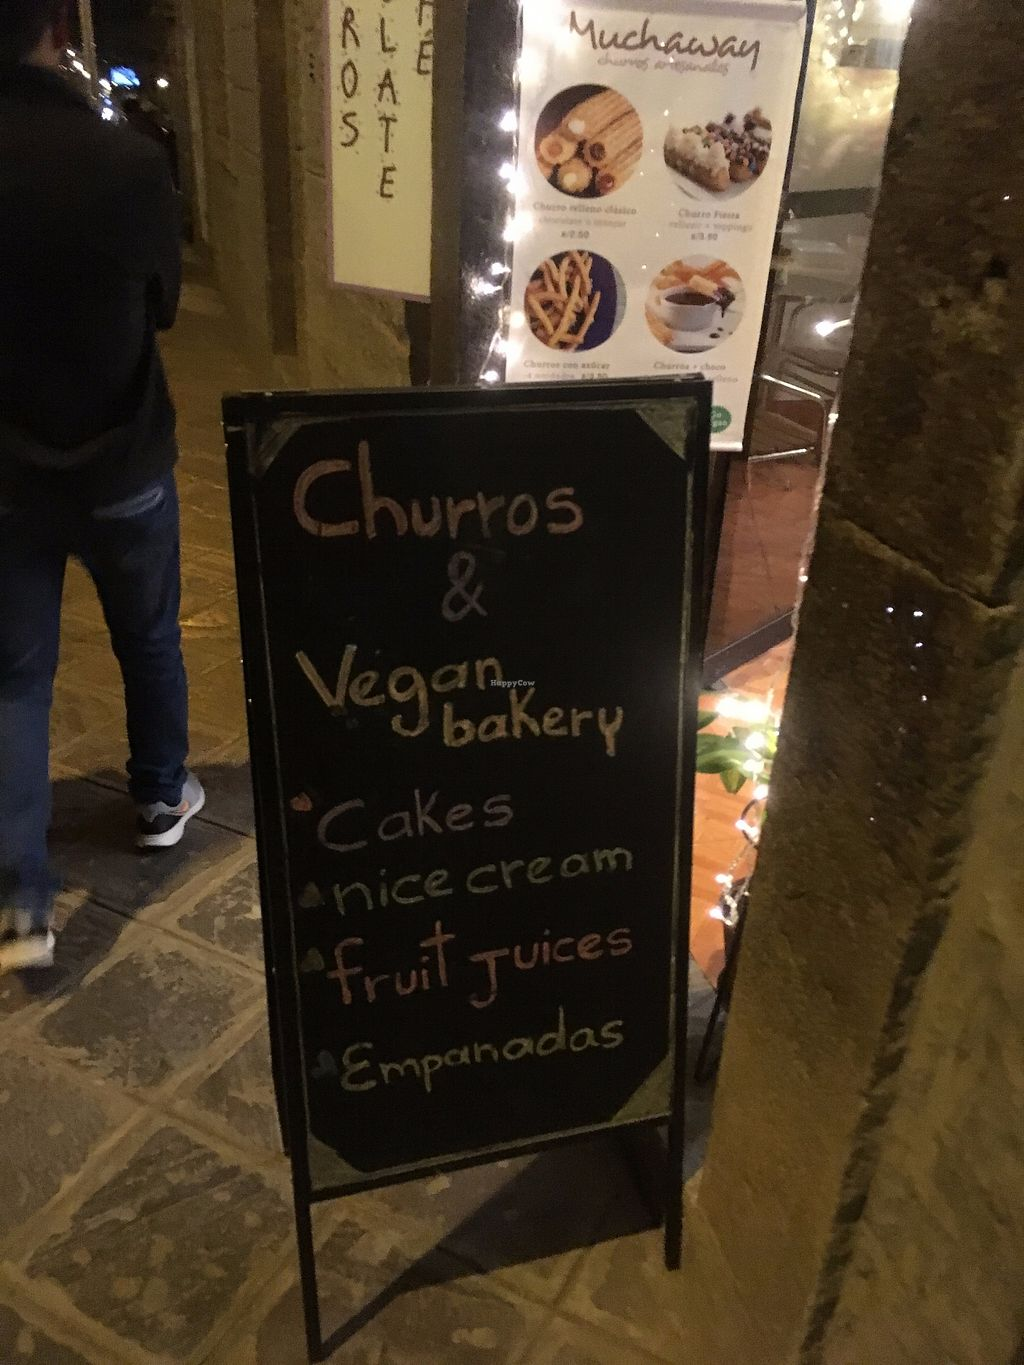 """Photo of The Churro Bar & Vegan Bakery  by <a href=""""/members/profile/vegan_ryan"""">vegan_ryan</a> <br/>exterior <br/> July 16, 2017  - <a href='/contact/abuse/image/86714/281025'>Report</a>"""